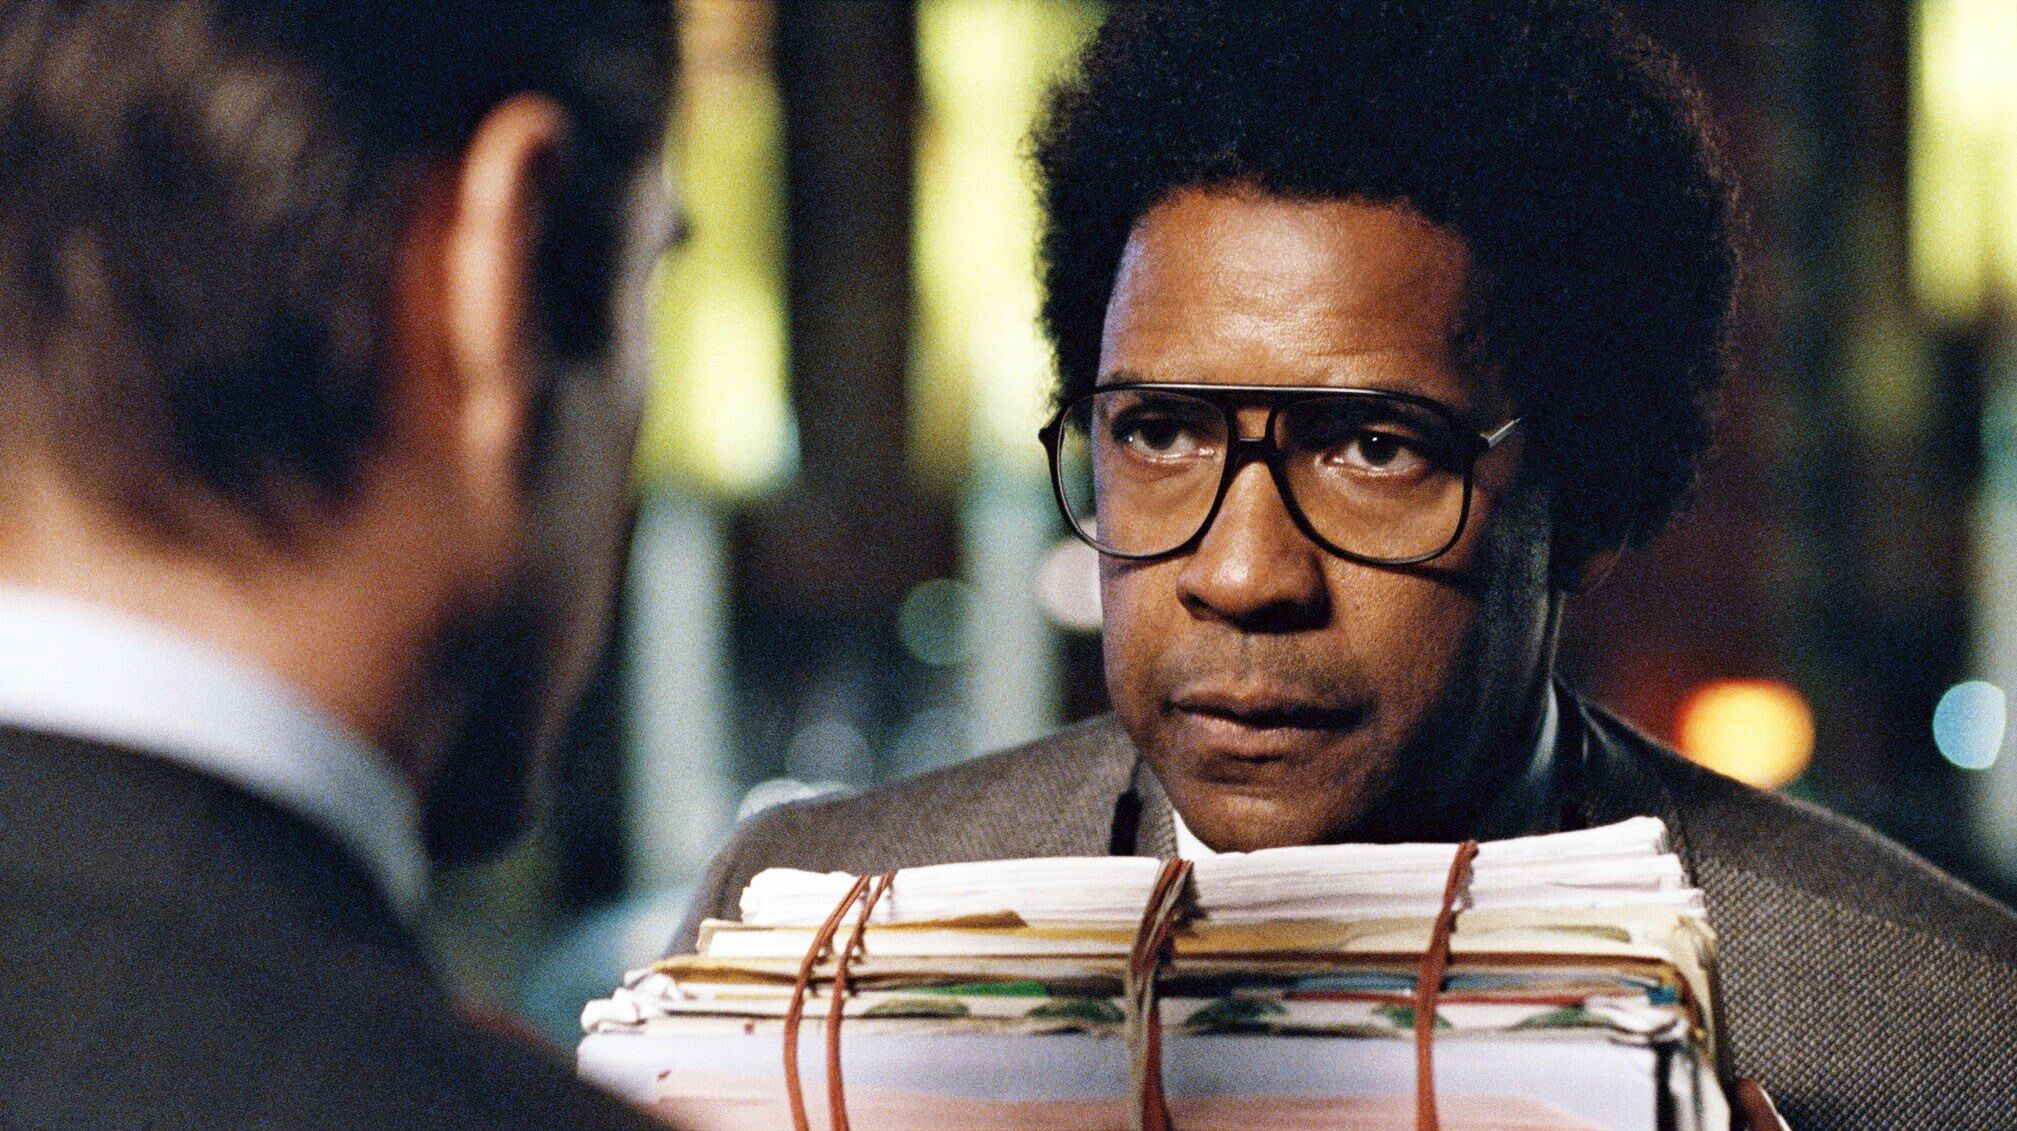 DENZEL WASHINGTON SECURES ACADEMY AWARD NOMINATION FOR SONY PICTURES' ROMAN J. ISRAEL ESQ.